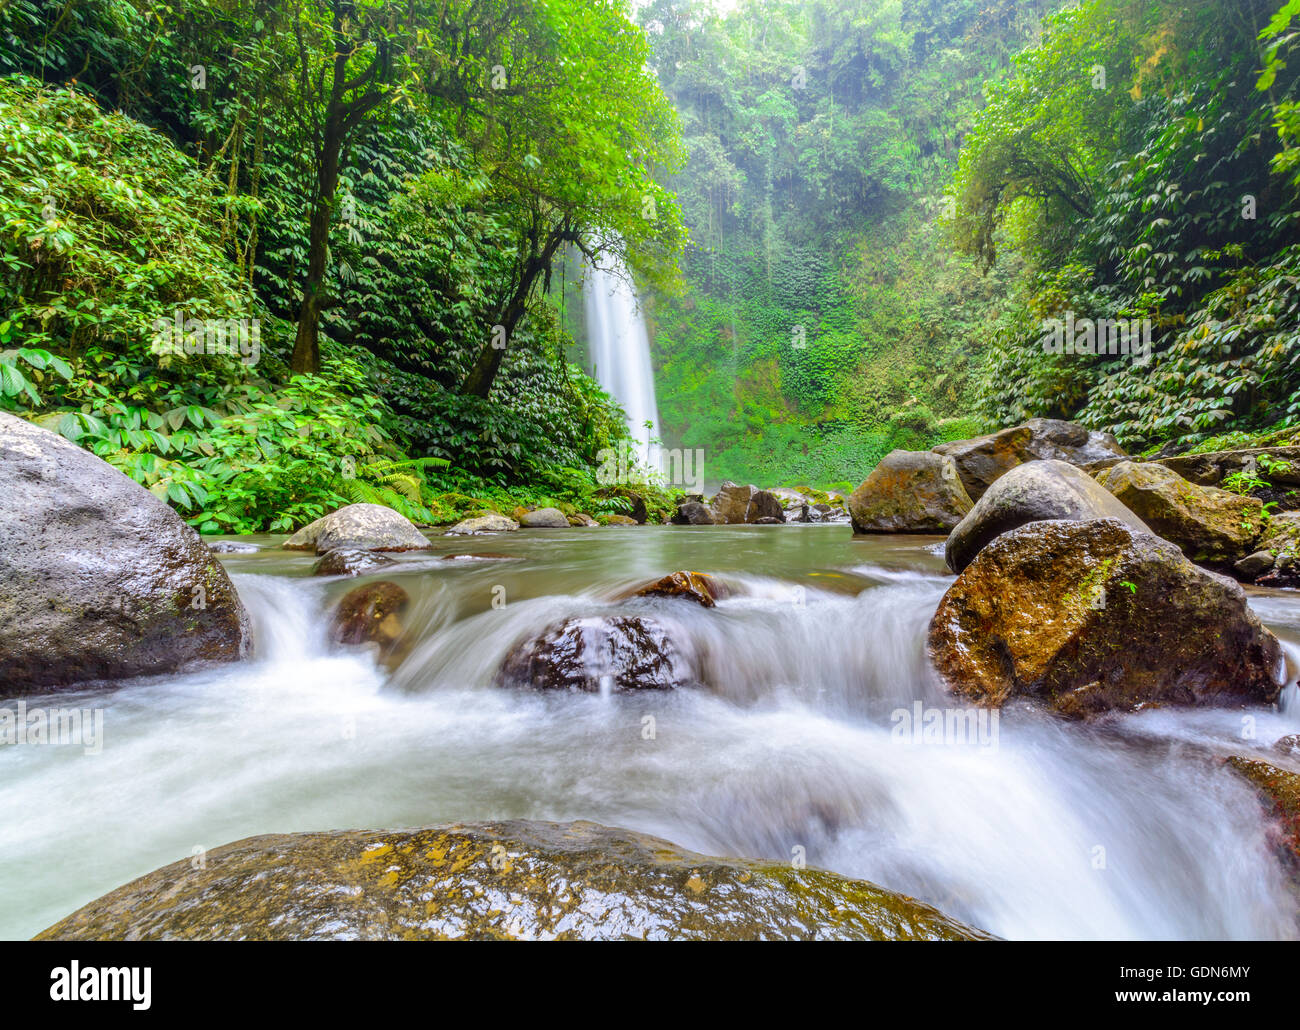 Lush, Pristine, Emerald Green, Tropical Forest In Mountainous ...